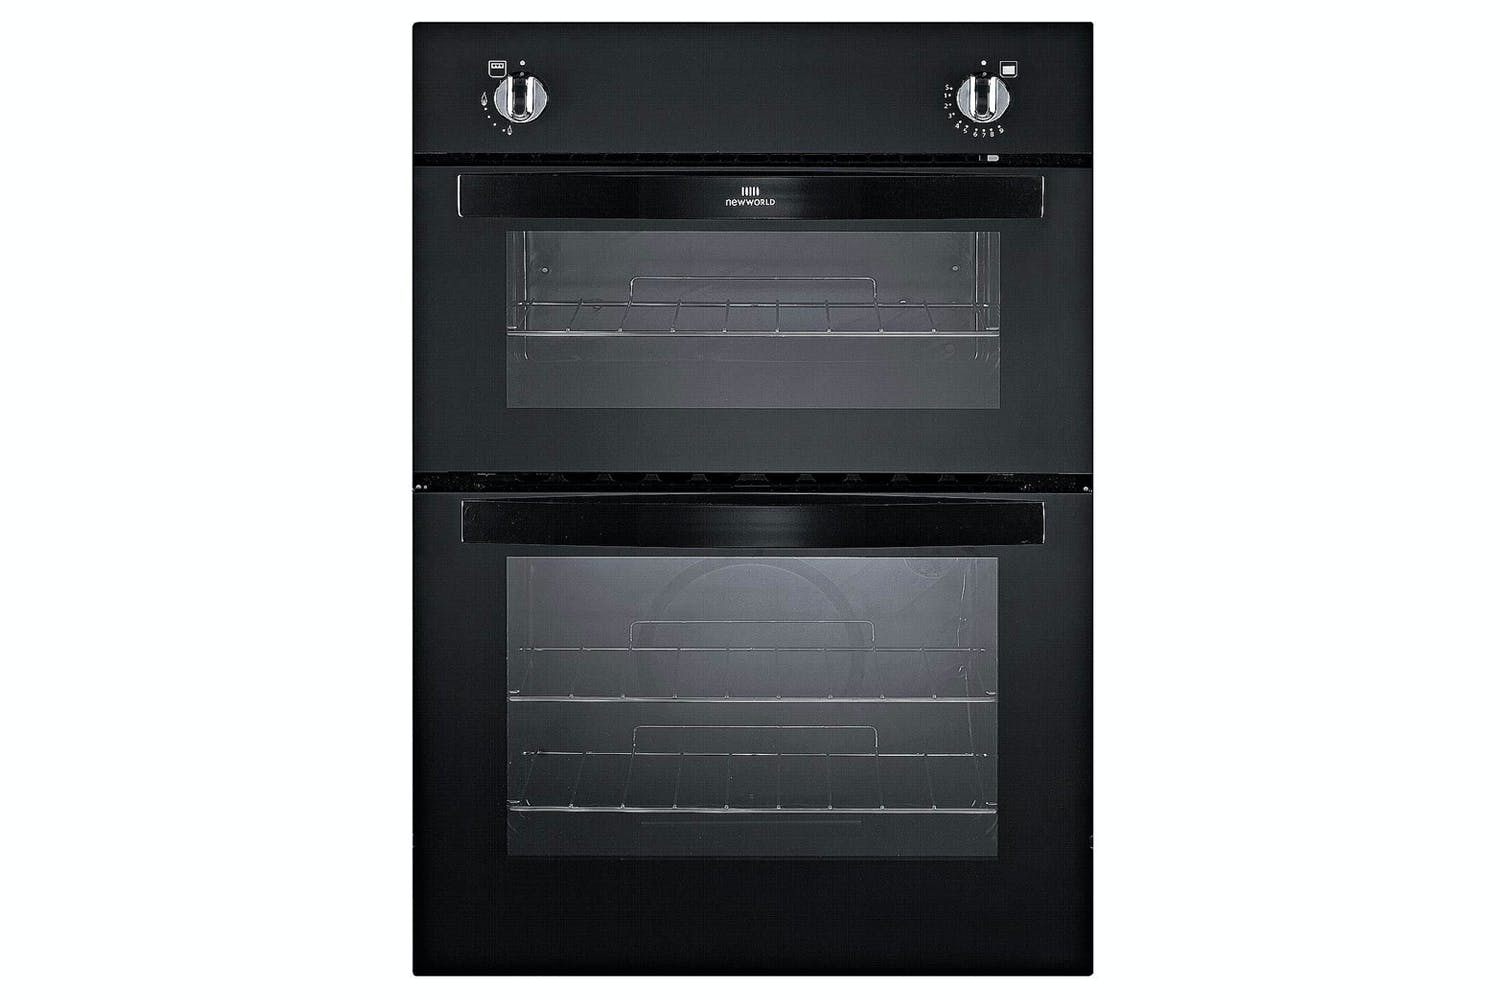 New World Kitchen Appliances New World Nw901doblk Built In Double Oven Ireland